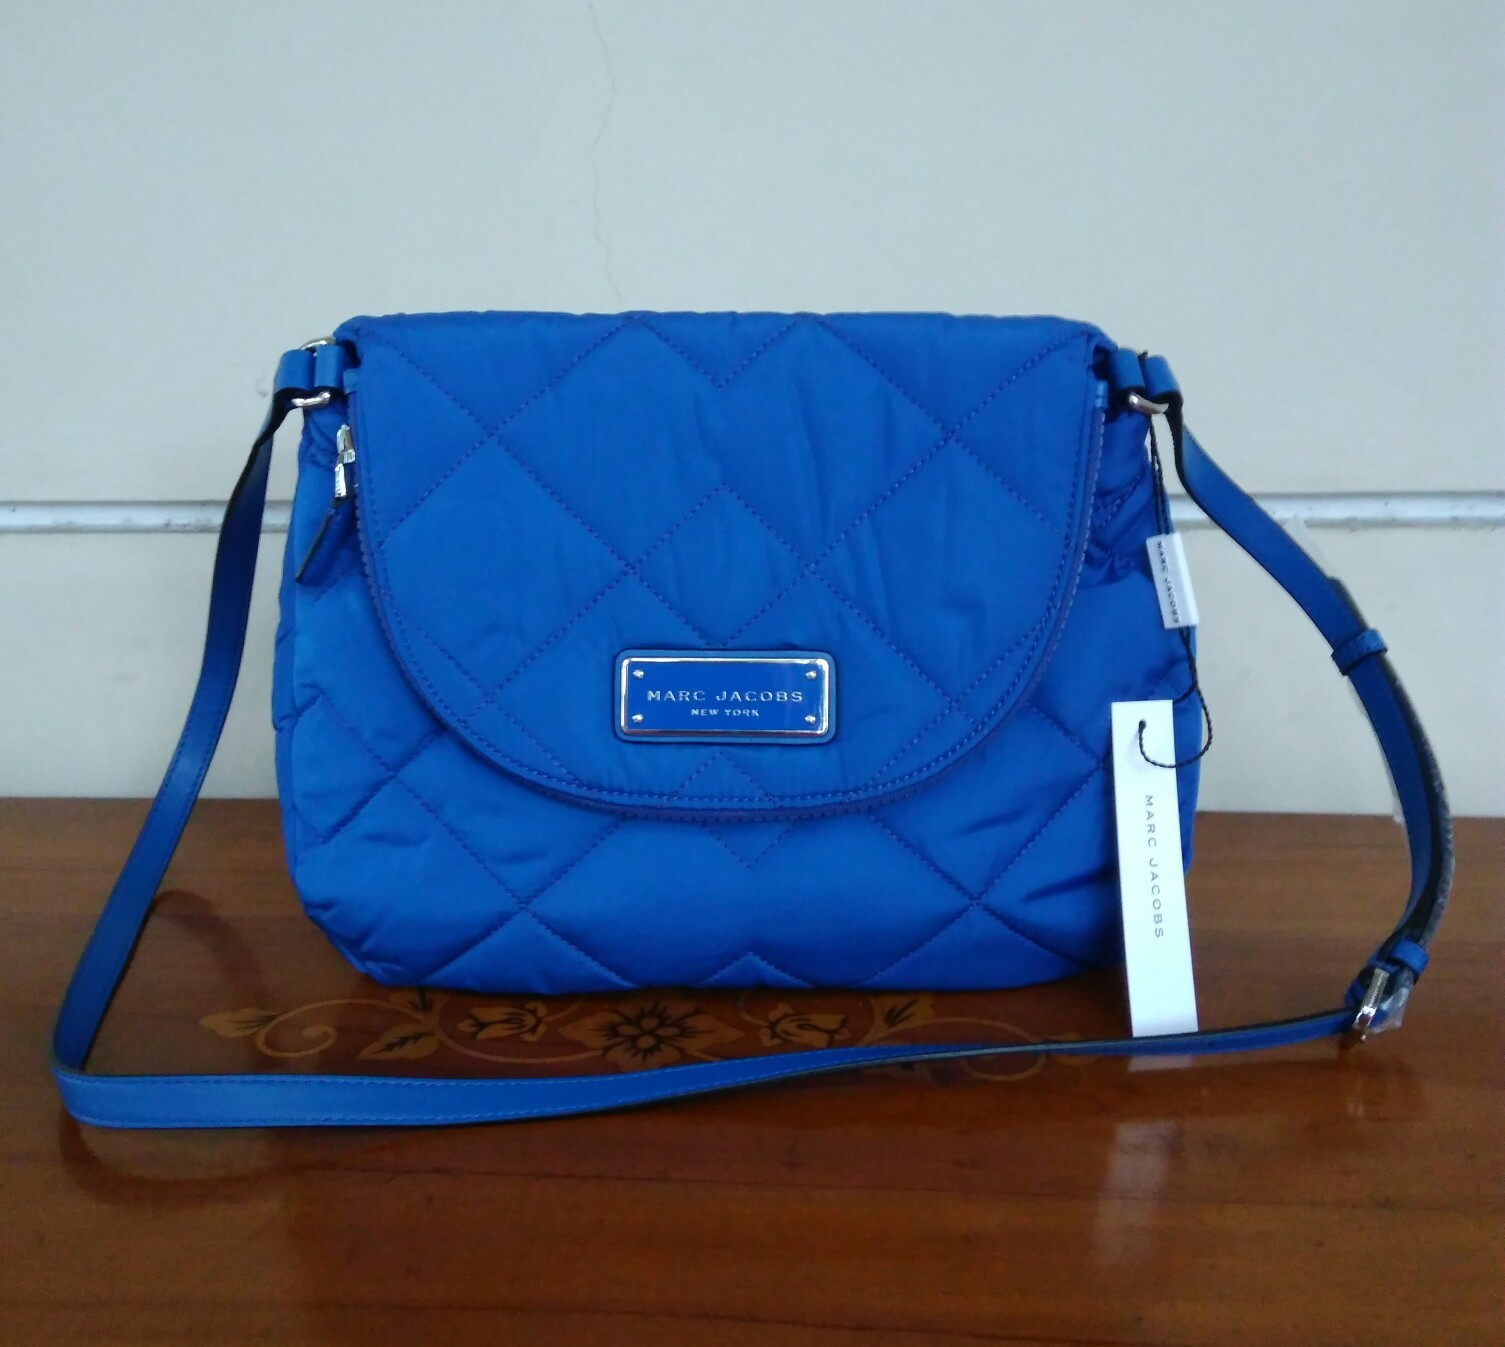 81601647eb304 Prebu Handbags Marc Jacobs Quilted Nylon Mini Crossbody. Marc Jacobs  Quilted Backpack